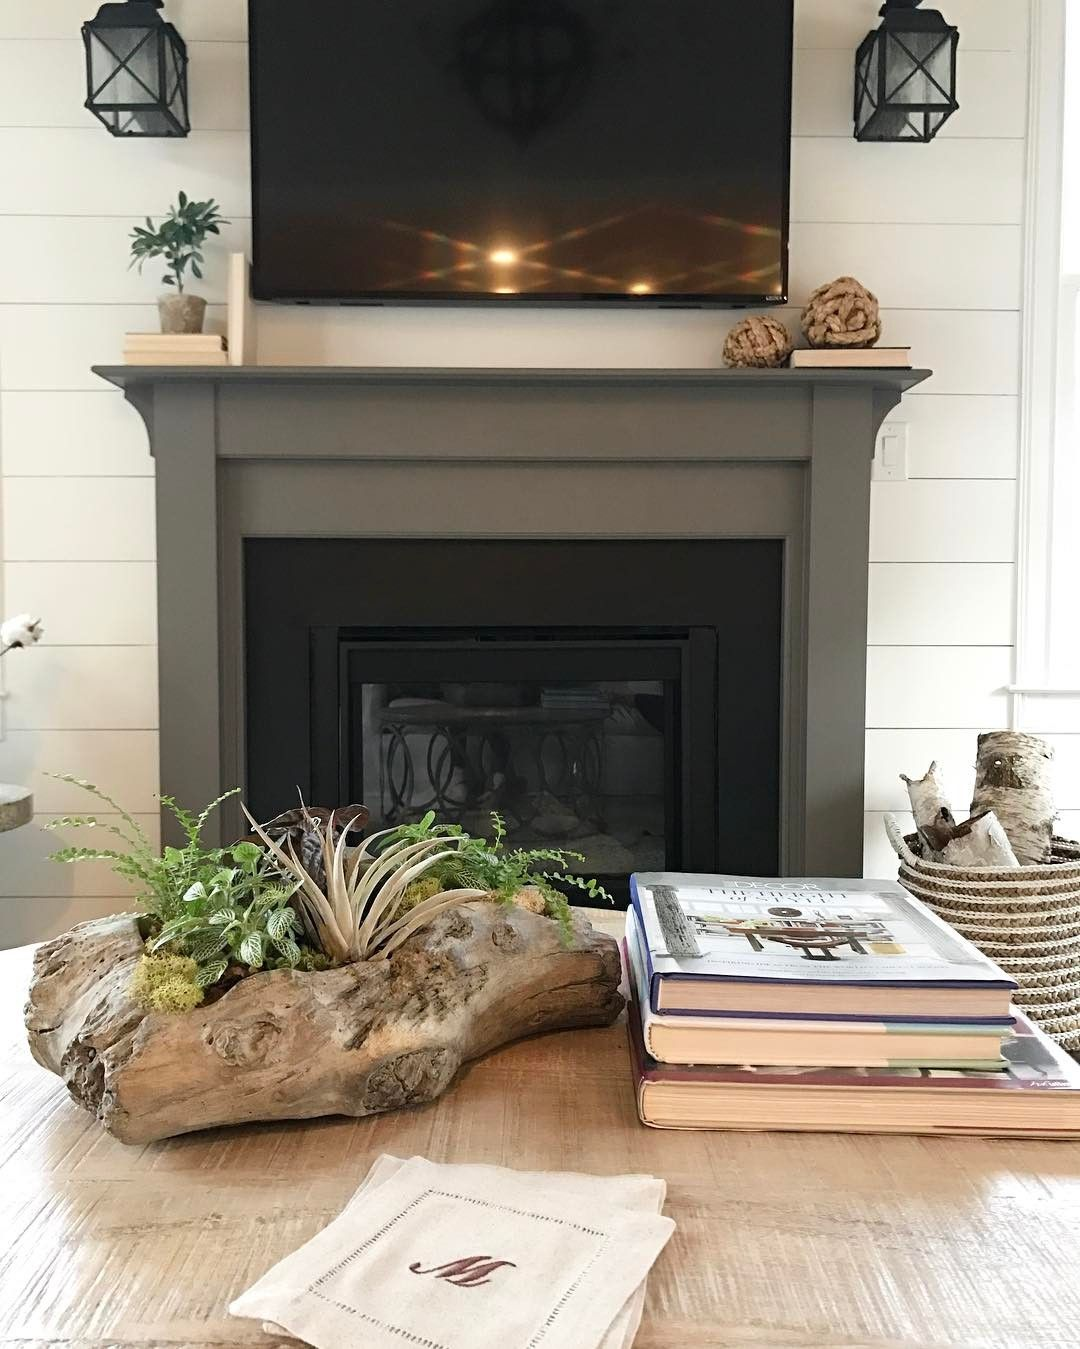 The Fireplace Surround Is Painted In Sherwin Williams